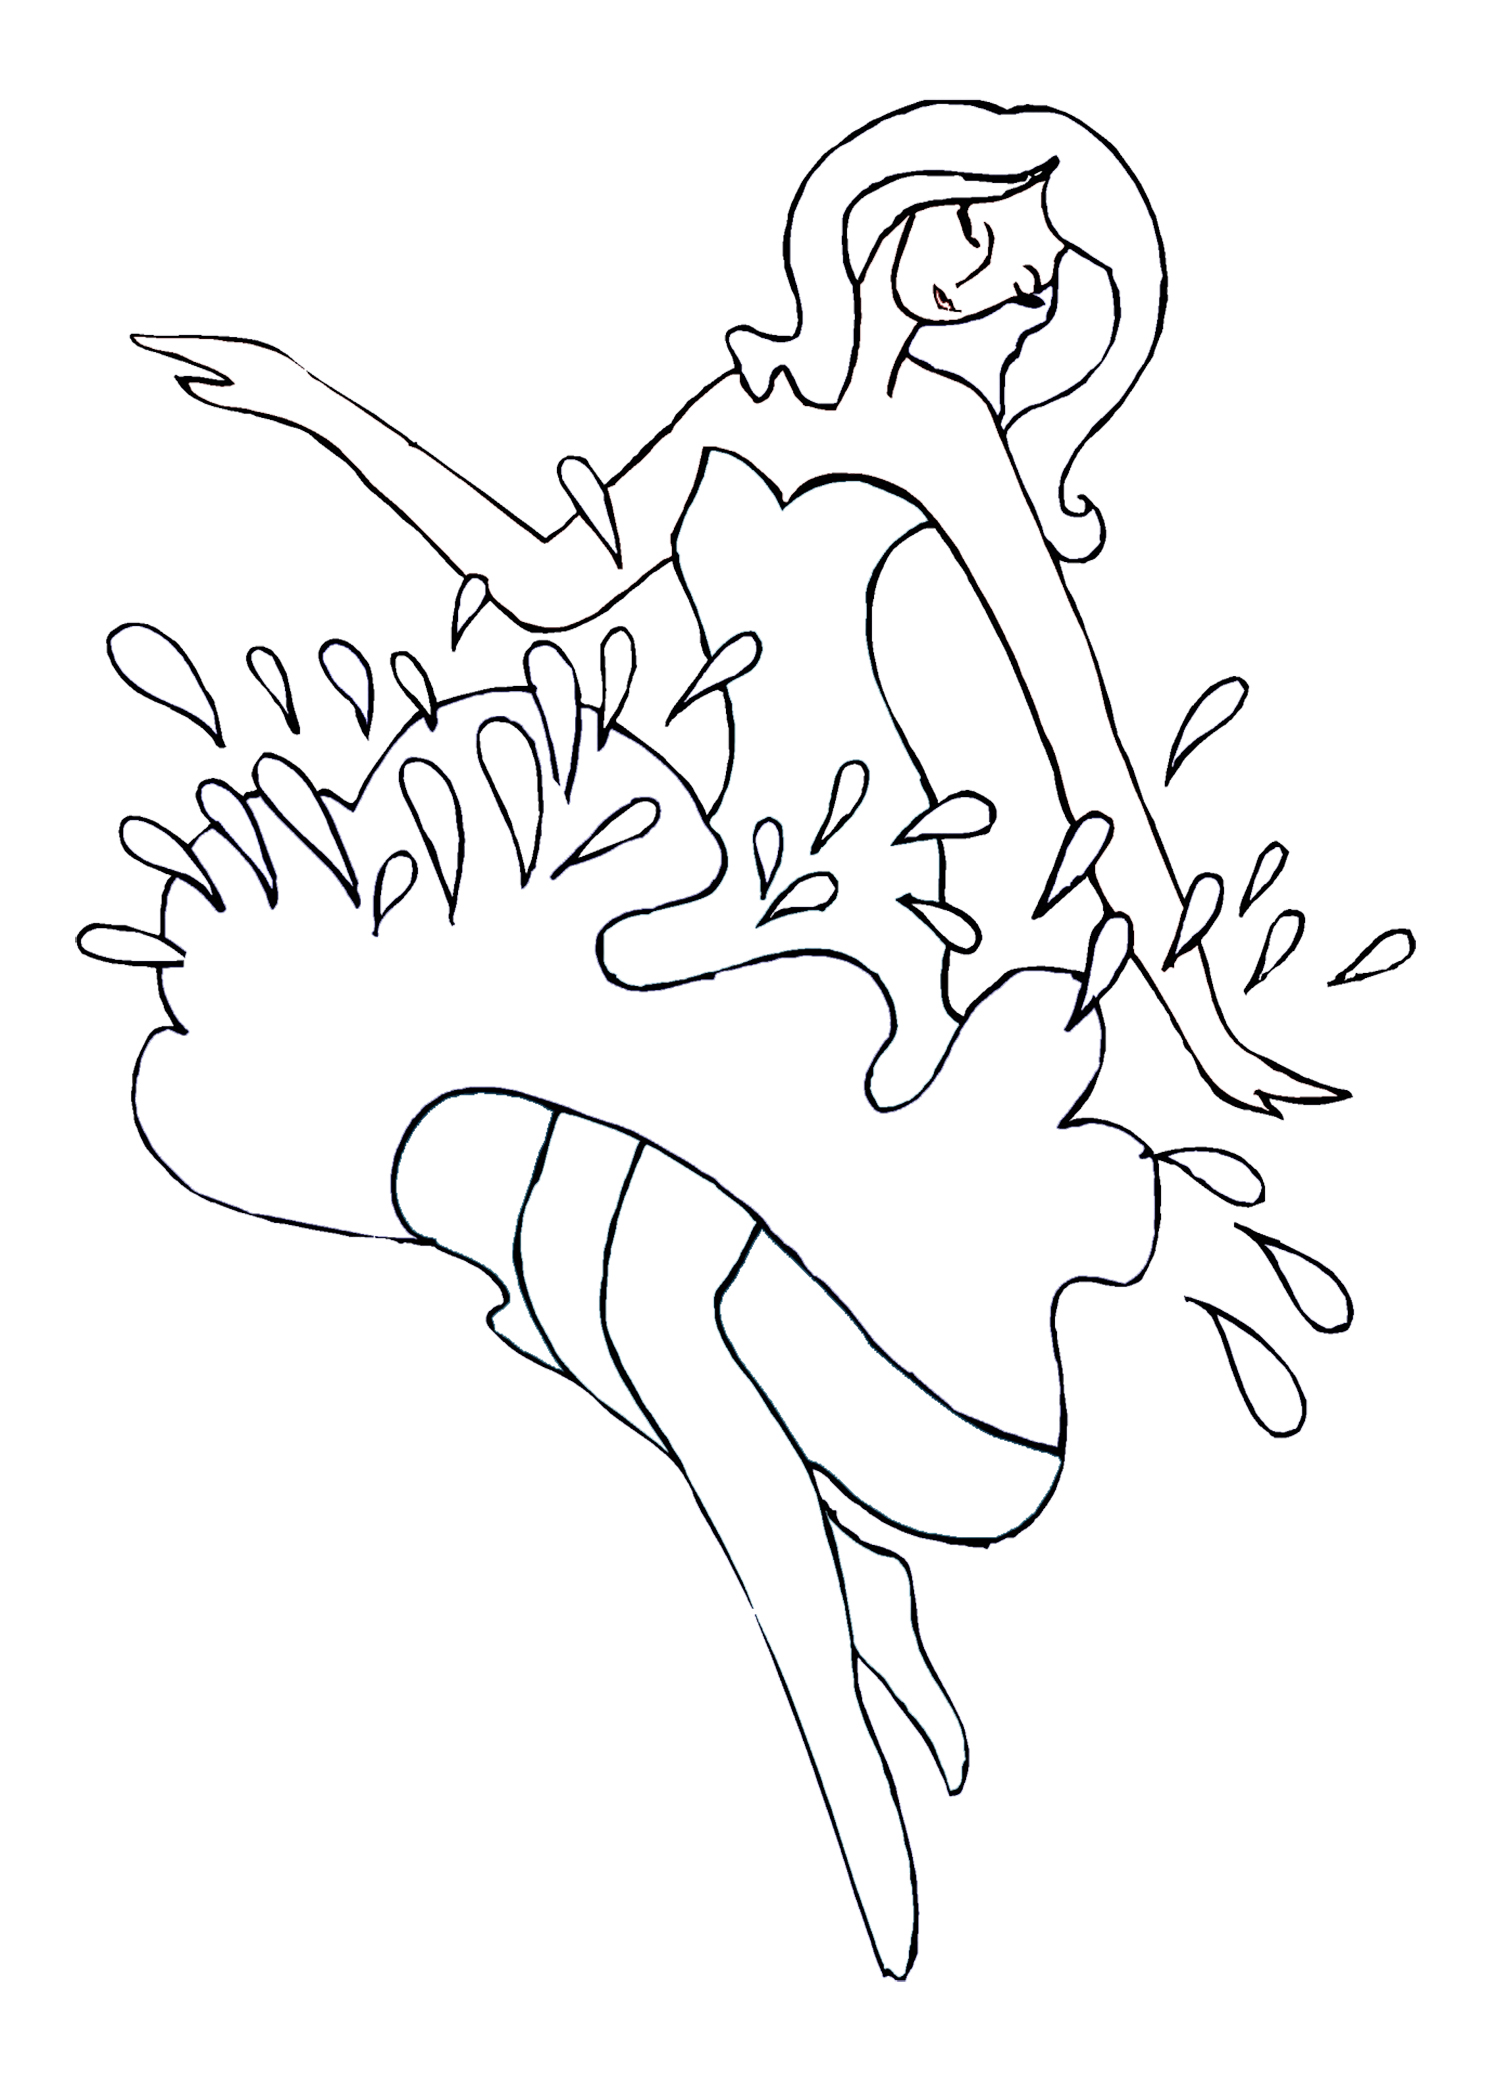 dance coloring page with water drops